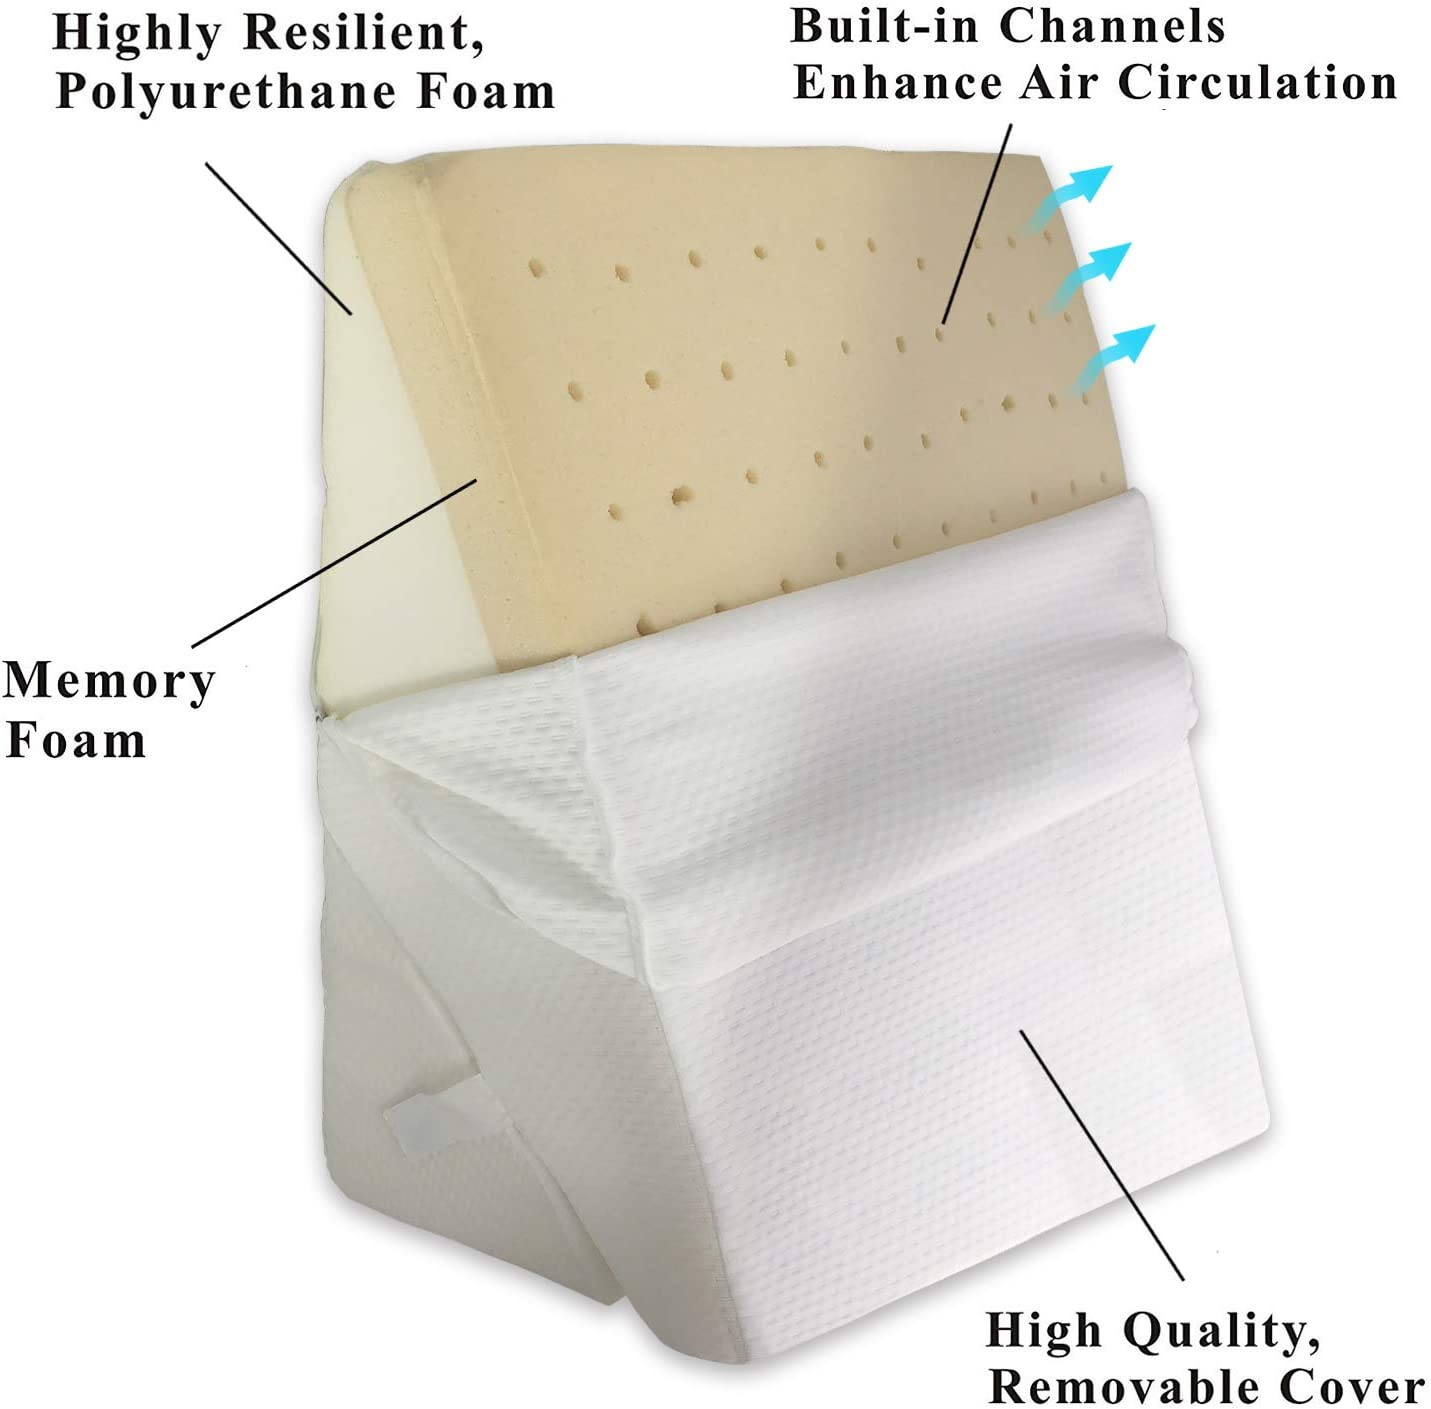 Acid Reflux Pillow,Best for Sleeping Removable Cover Back Support Pillow White, Queen Cushion Triangle Pillow Reading MARQUESS Bed Wedge Pillow with Memory Foam Top Rest or Elevation